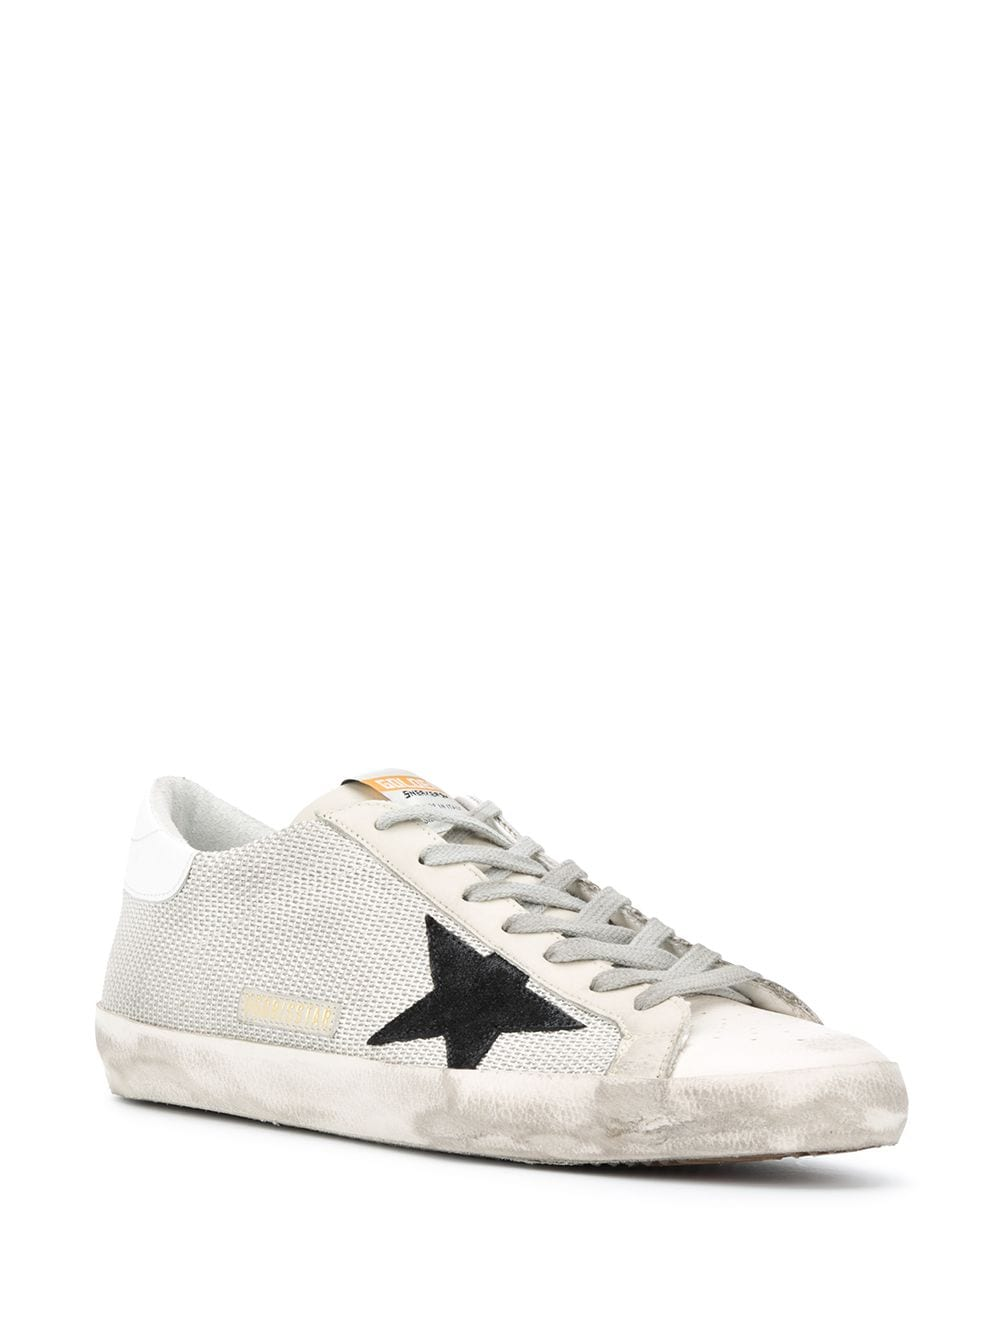 Mens Superstar Low-Top Sneakers 3/4